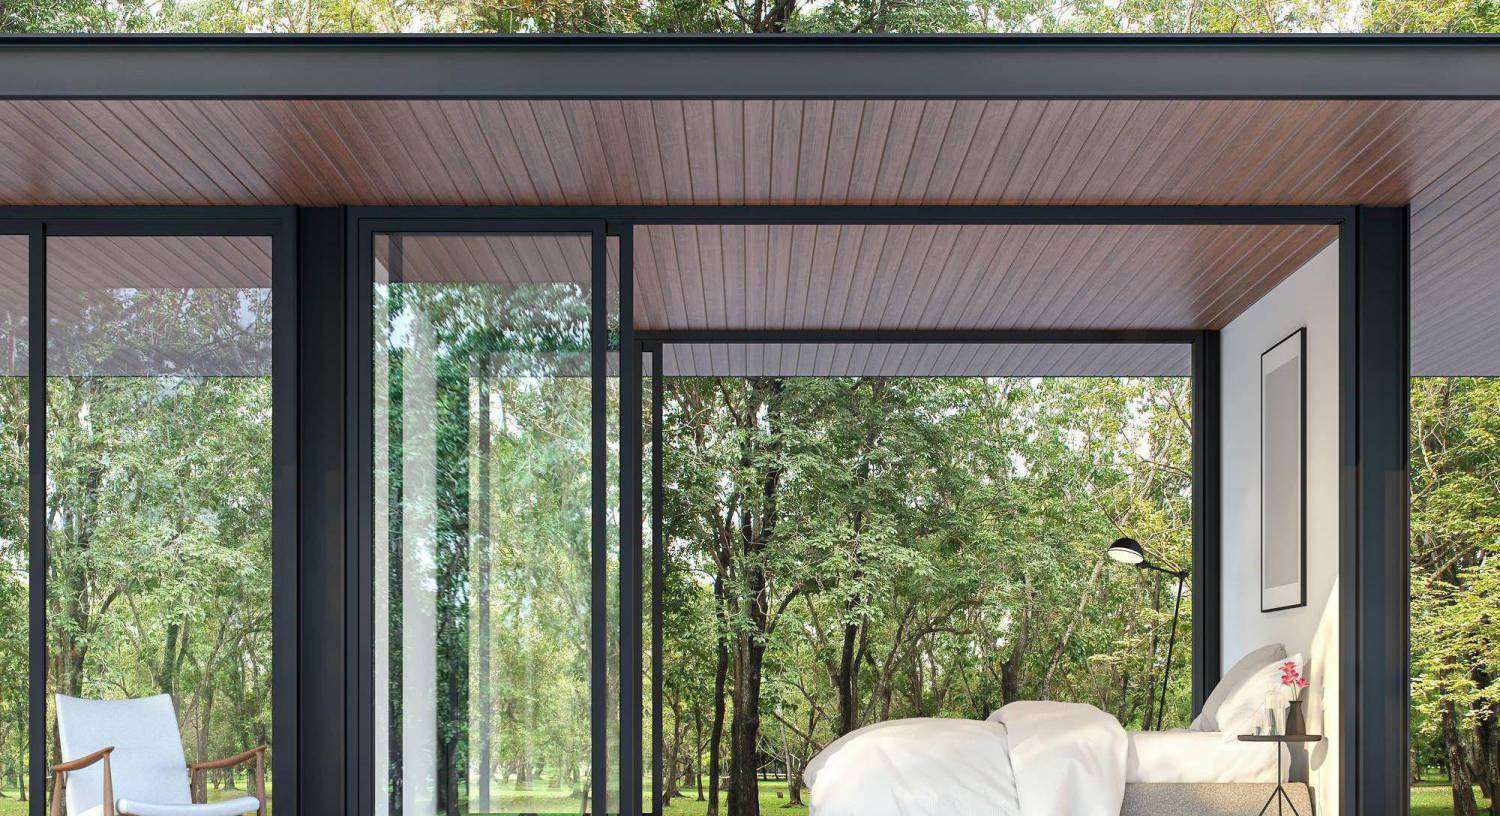 Sky's the limit for open-air rooms